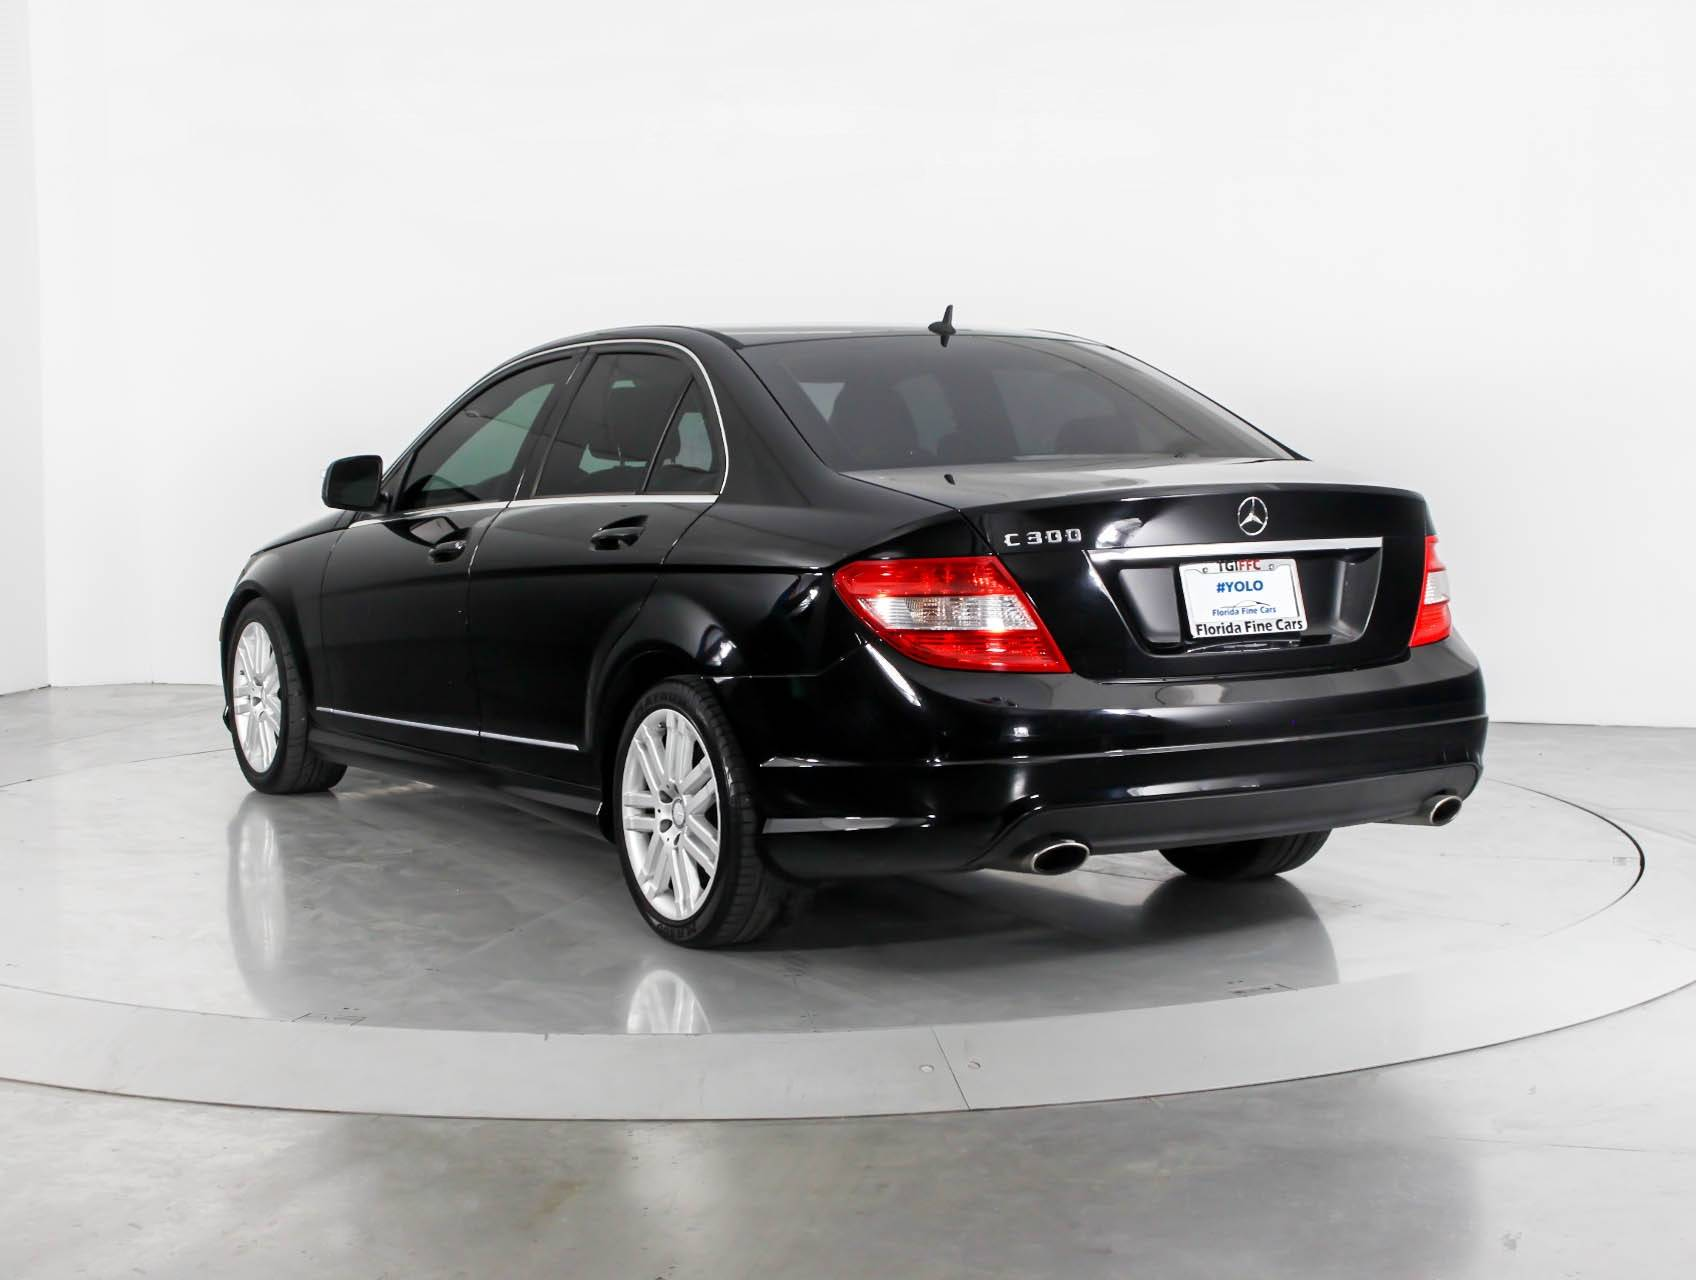 a t sedan next benz c motors class previous kilokor mercedes used classic